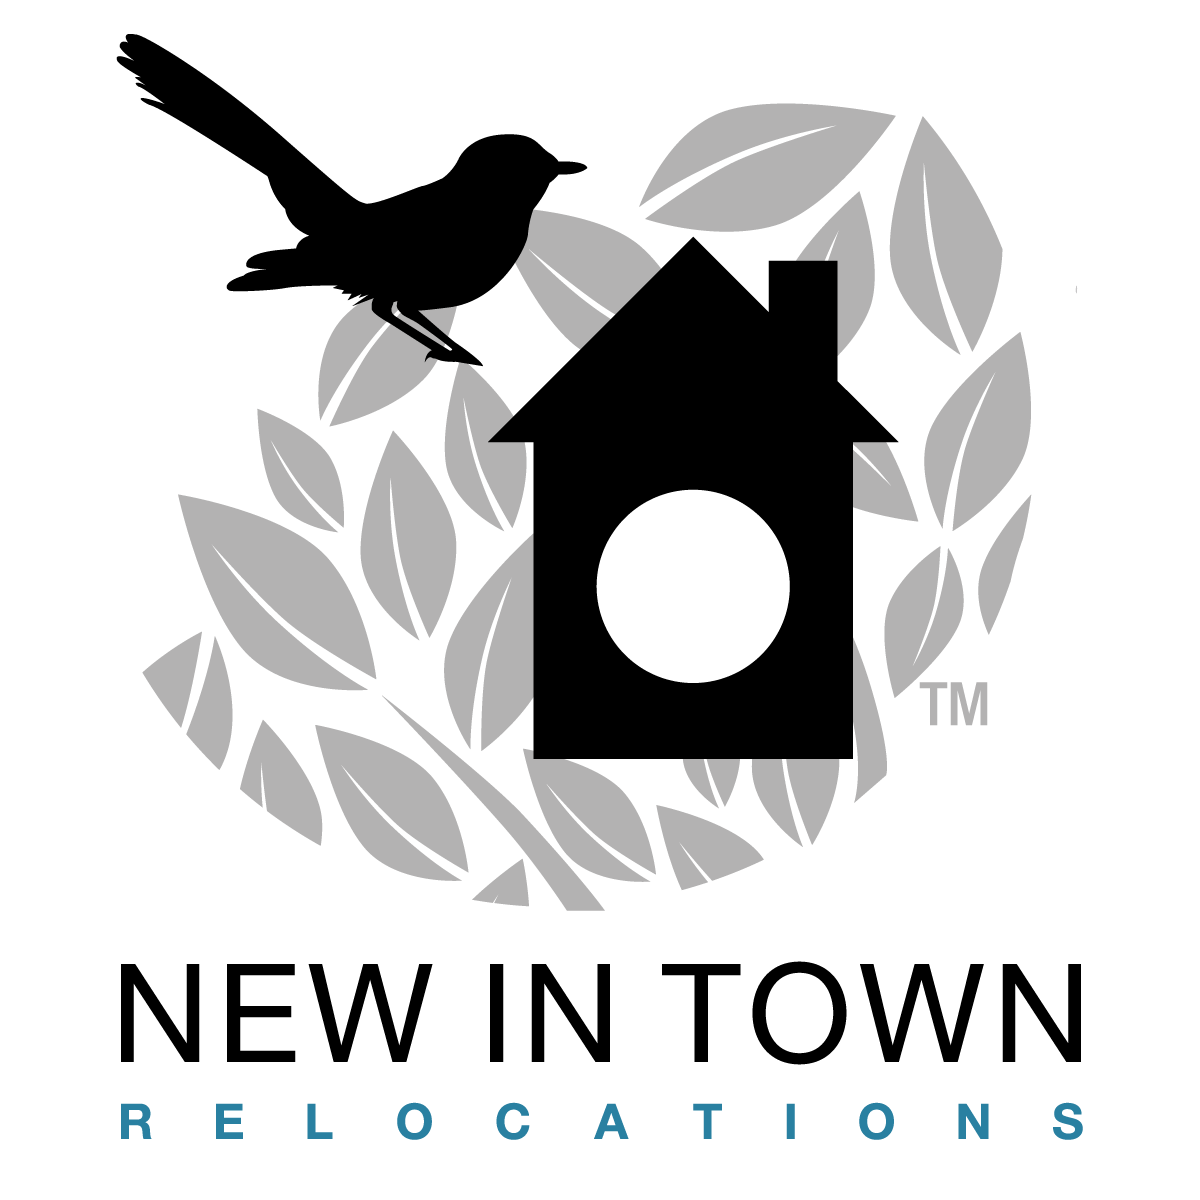 New In Town Relocations Logo TM.jpg